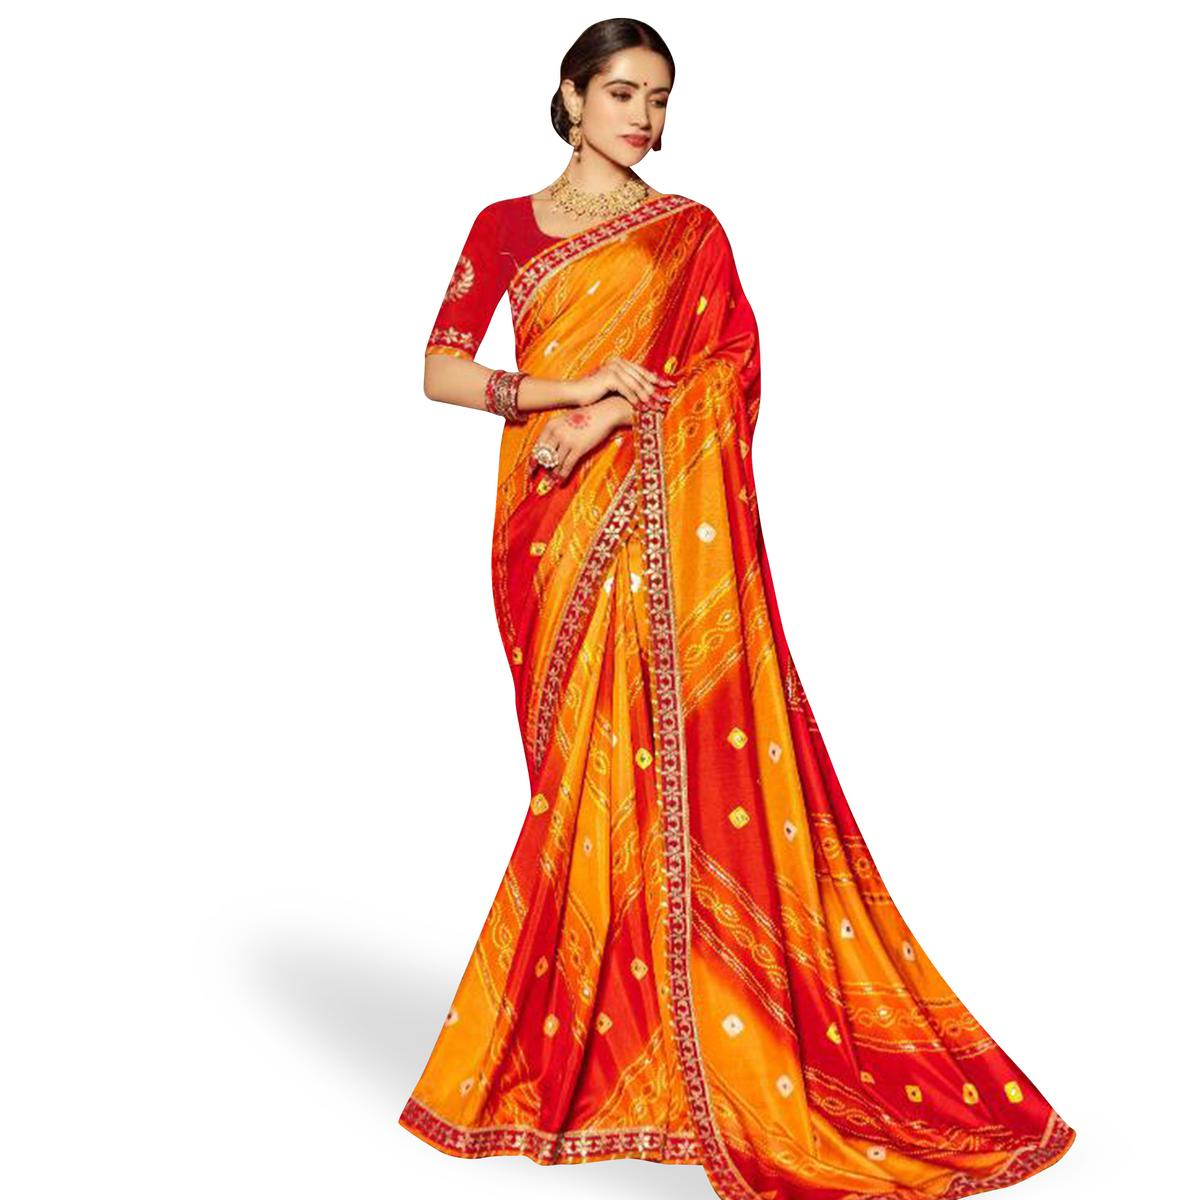 Gorgeous Orange-Red Colored Partywear Bandhani Printed Art Silk Saree